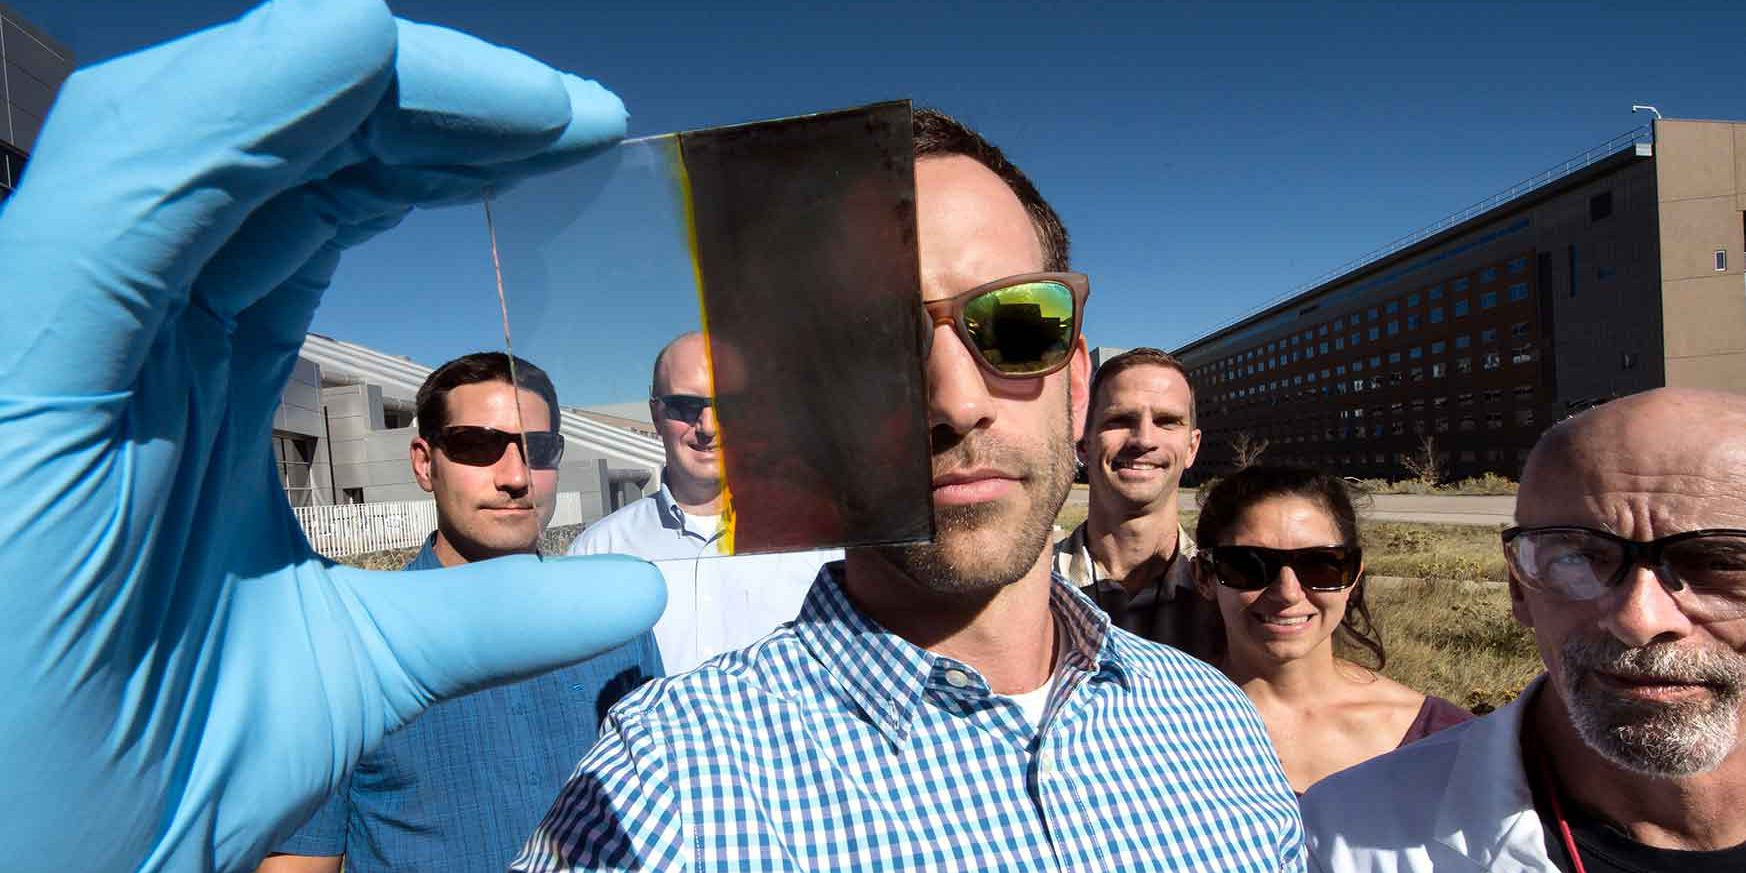 Solar powered smart windows break 11% efficiency – enough to generate more than 80% of US electricity